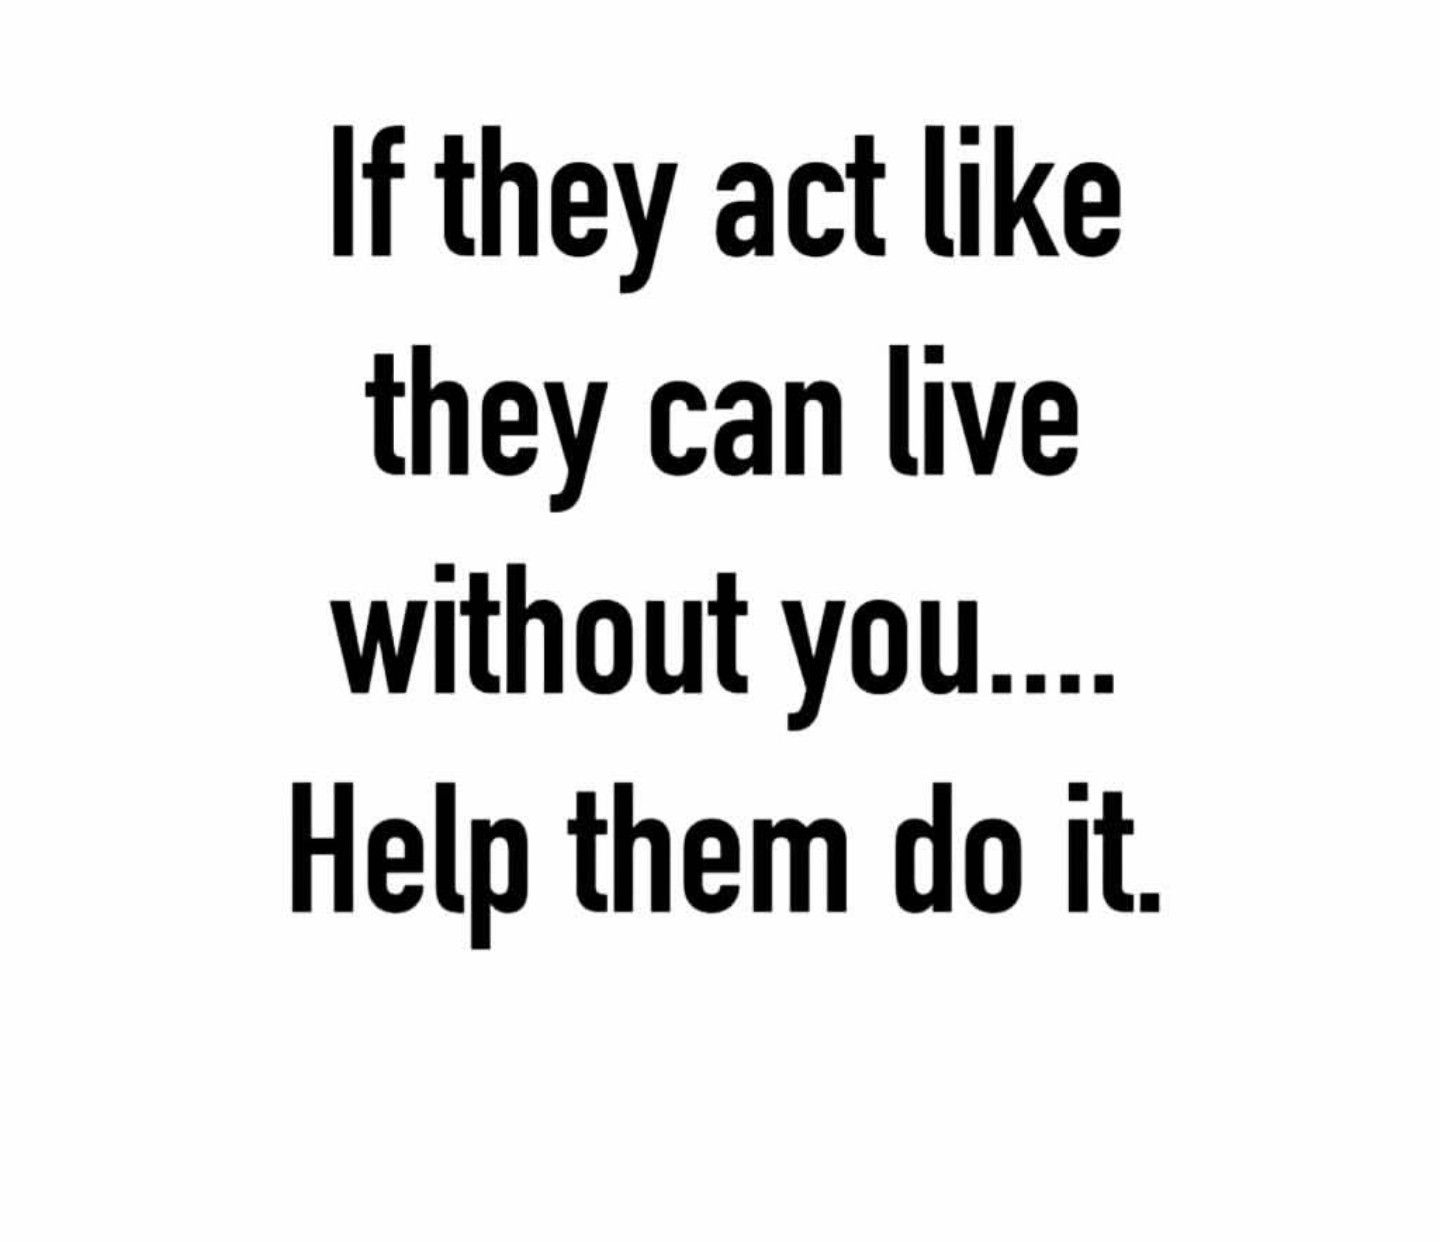 If they act like they can live without you.Help them to do it